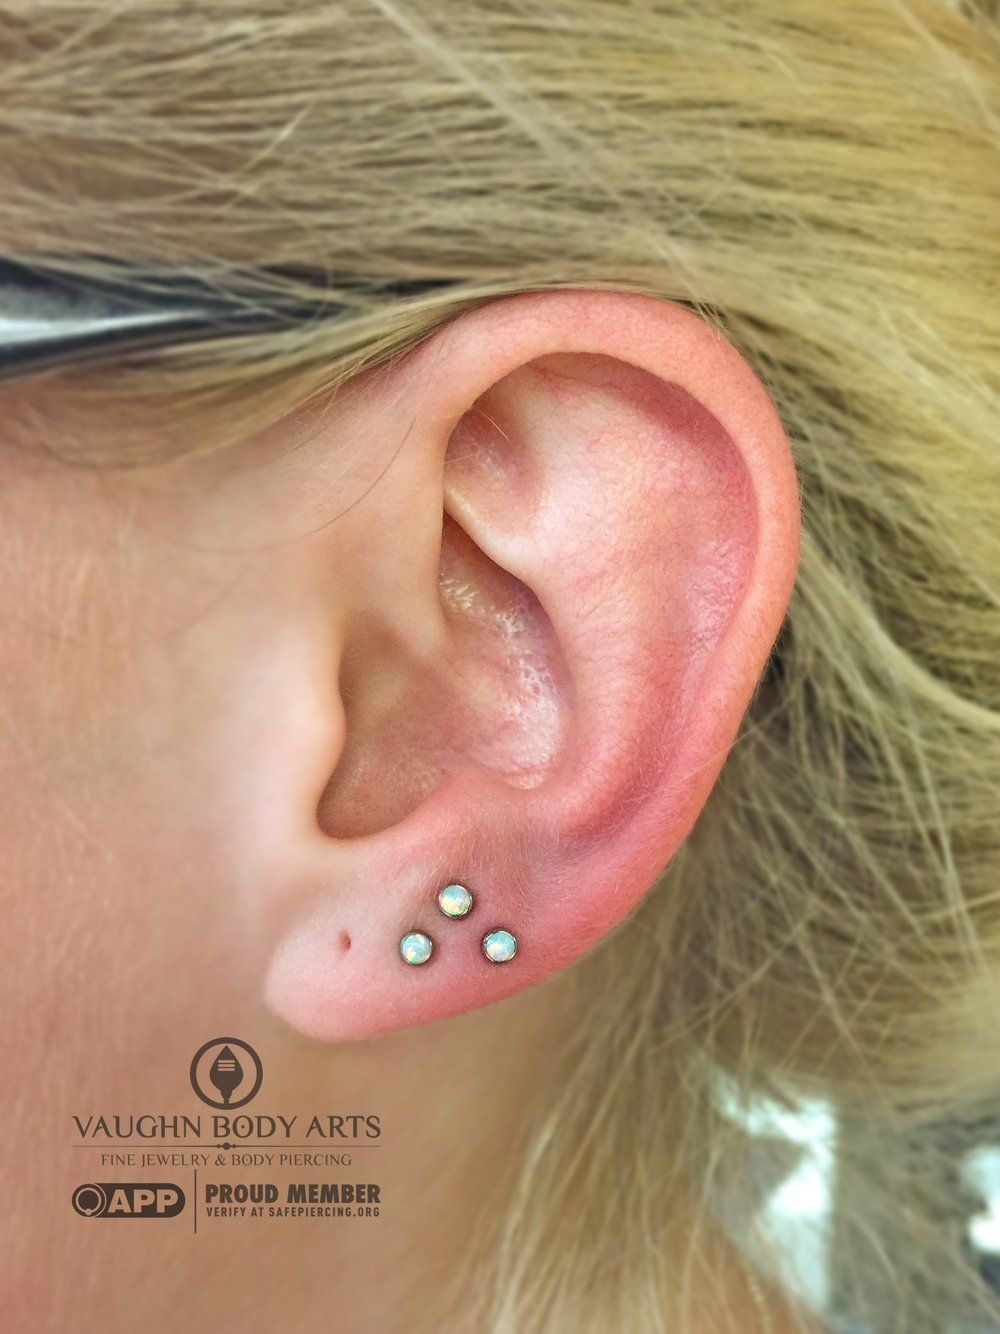 Triple earlobe piercings with titanium jewelry from Anatometal.